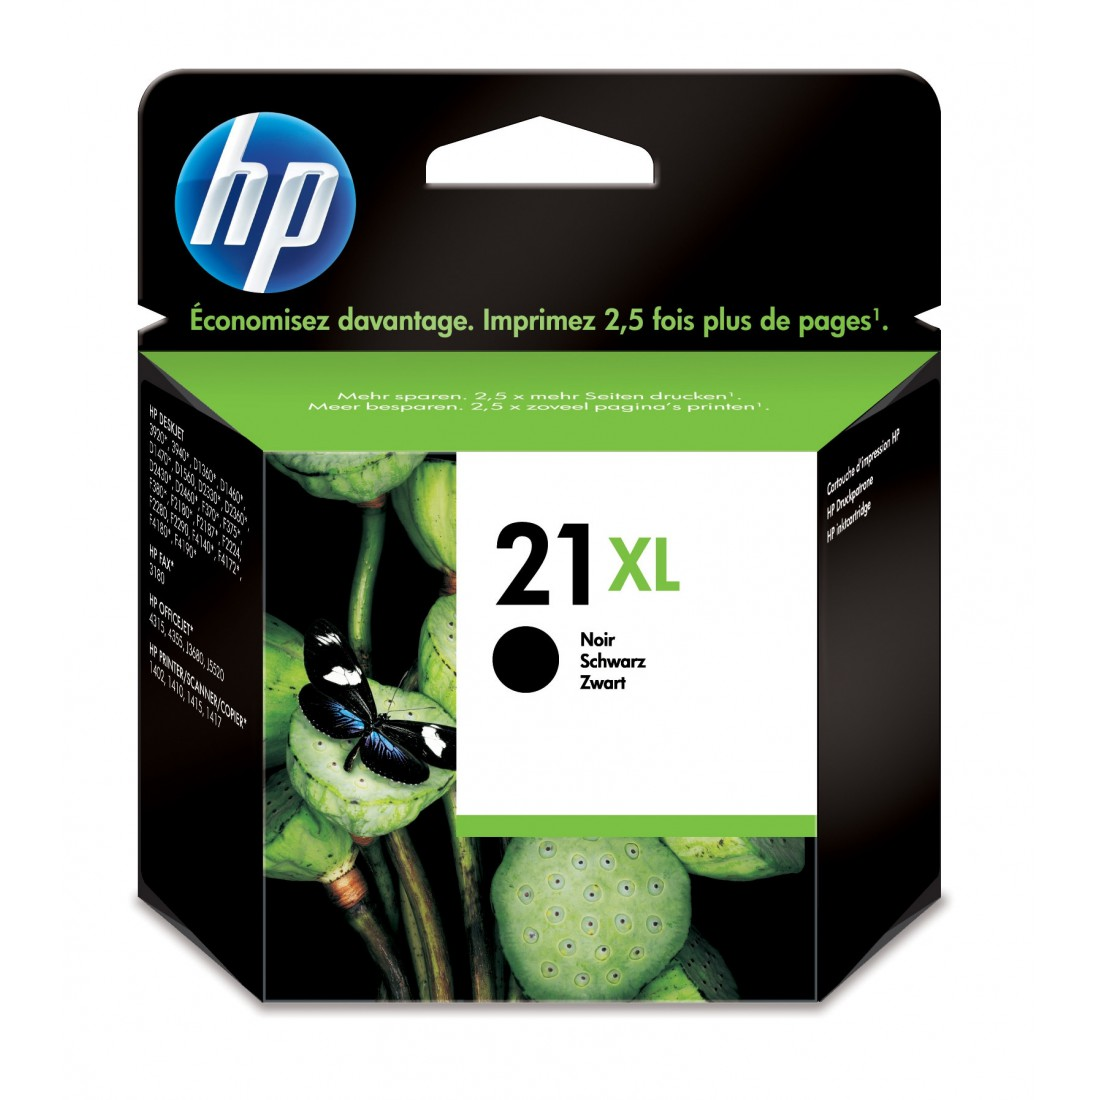 HP 21XL originele ink cartridge zwart high capacity 12ml 475